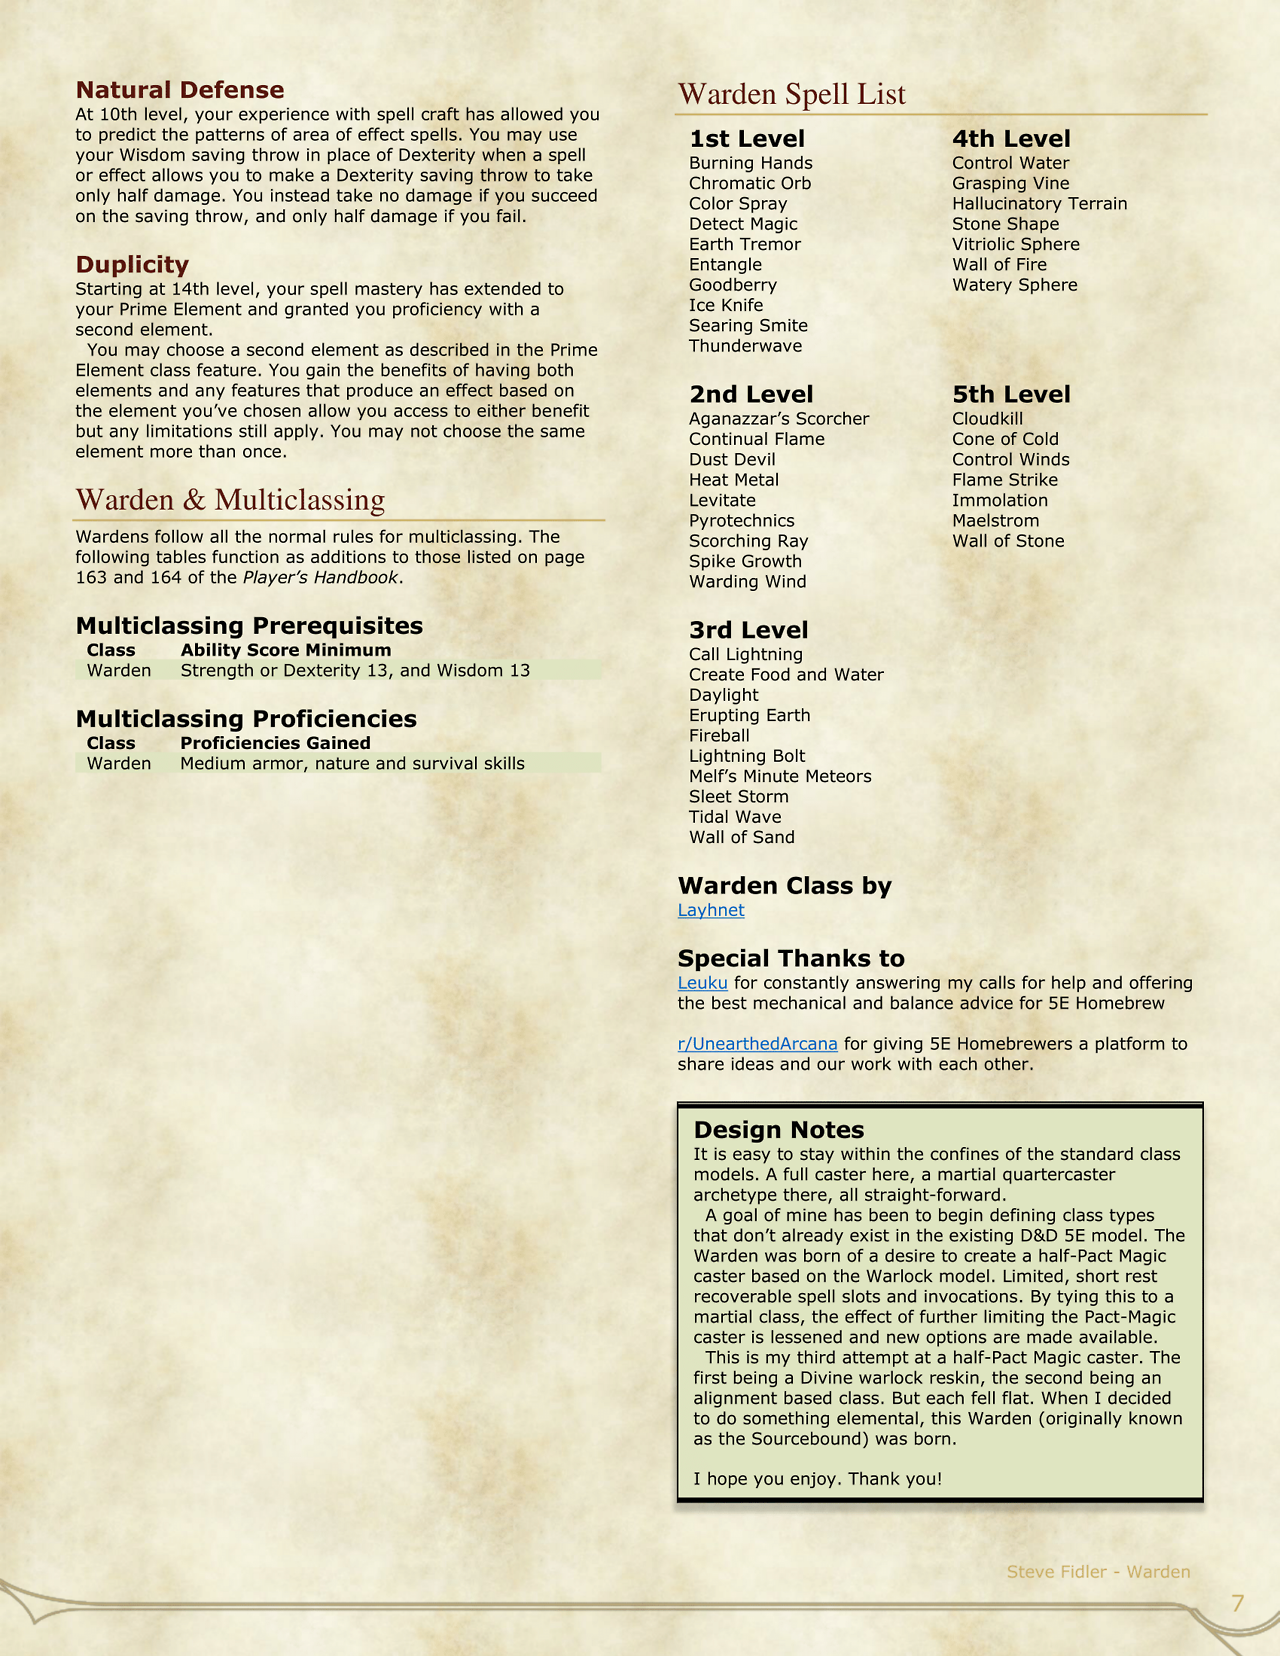 Dnd 5e Homebrew Warden Class By Layhnet Warden Dnd 5e Homebrew Dnd Classes You create a seismic disturbance at a point on the ground that you can see within range. dnd 5e homebrew warden class by